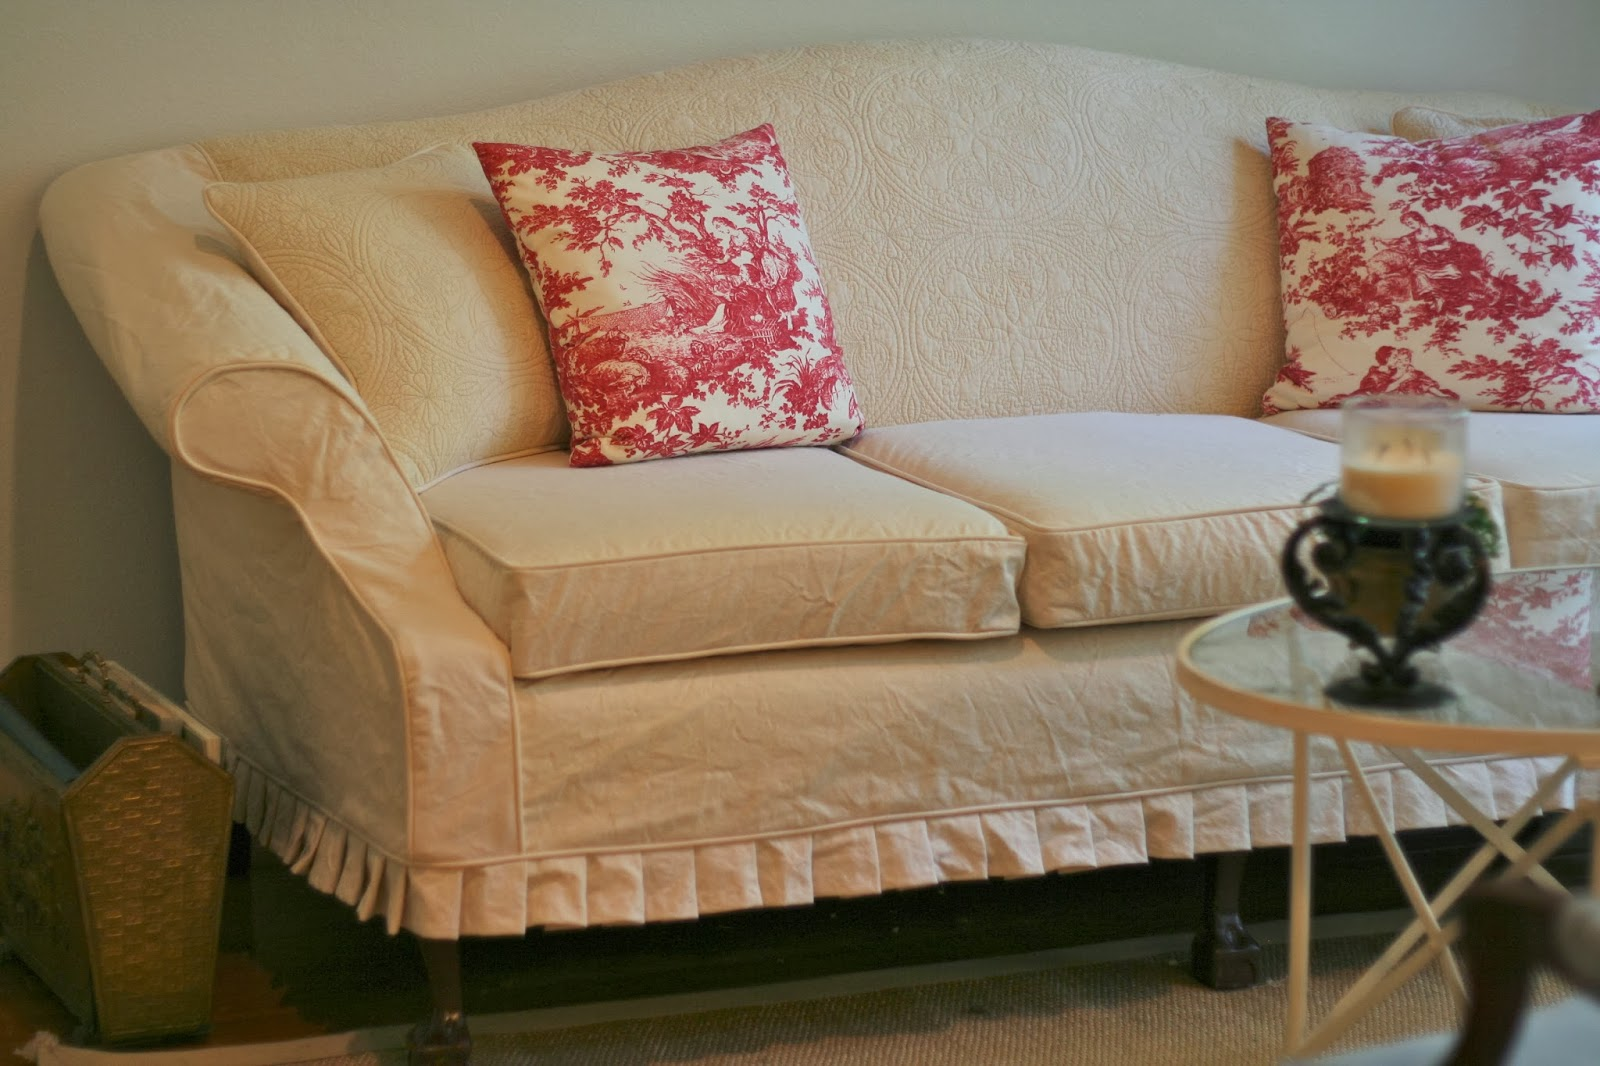 Camelback Sofa Slipcover Pattern By Camelback Sofa Slipcovers 3 Cushion  Pictures To Pin On ...